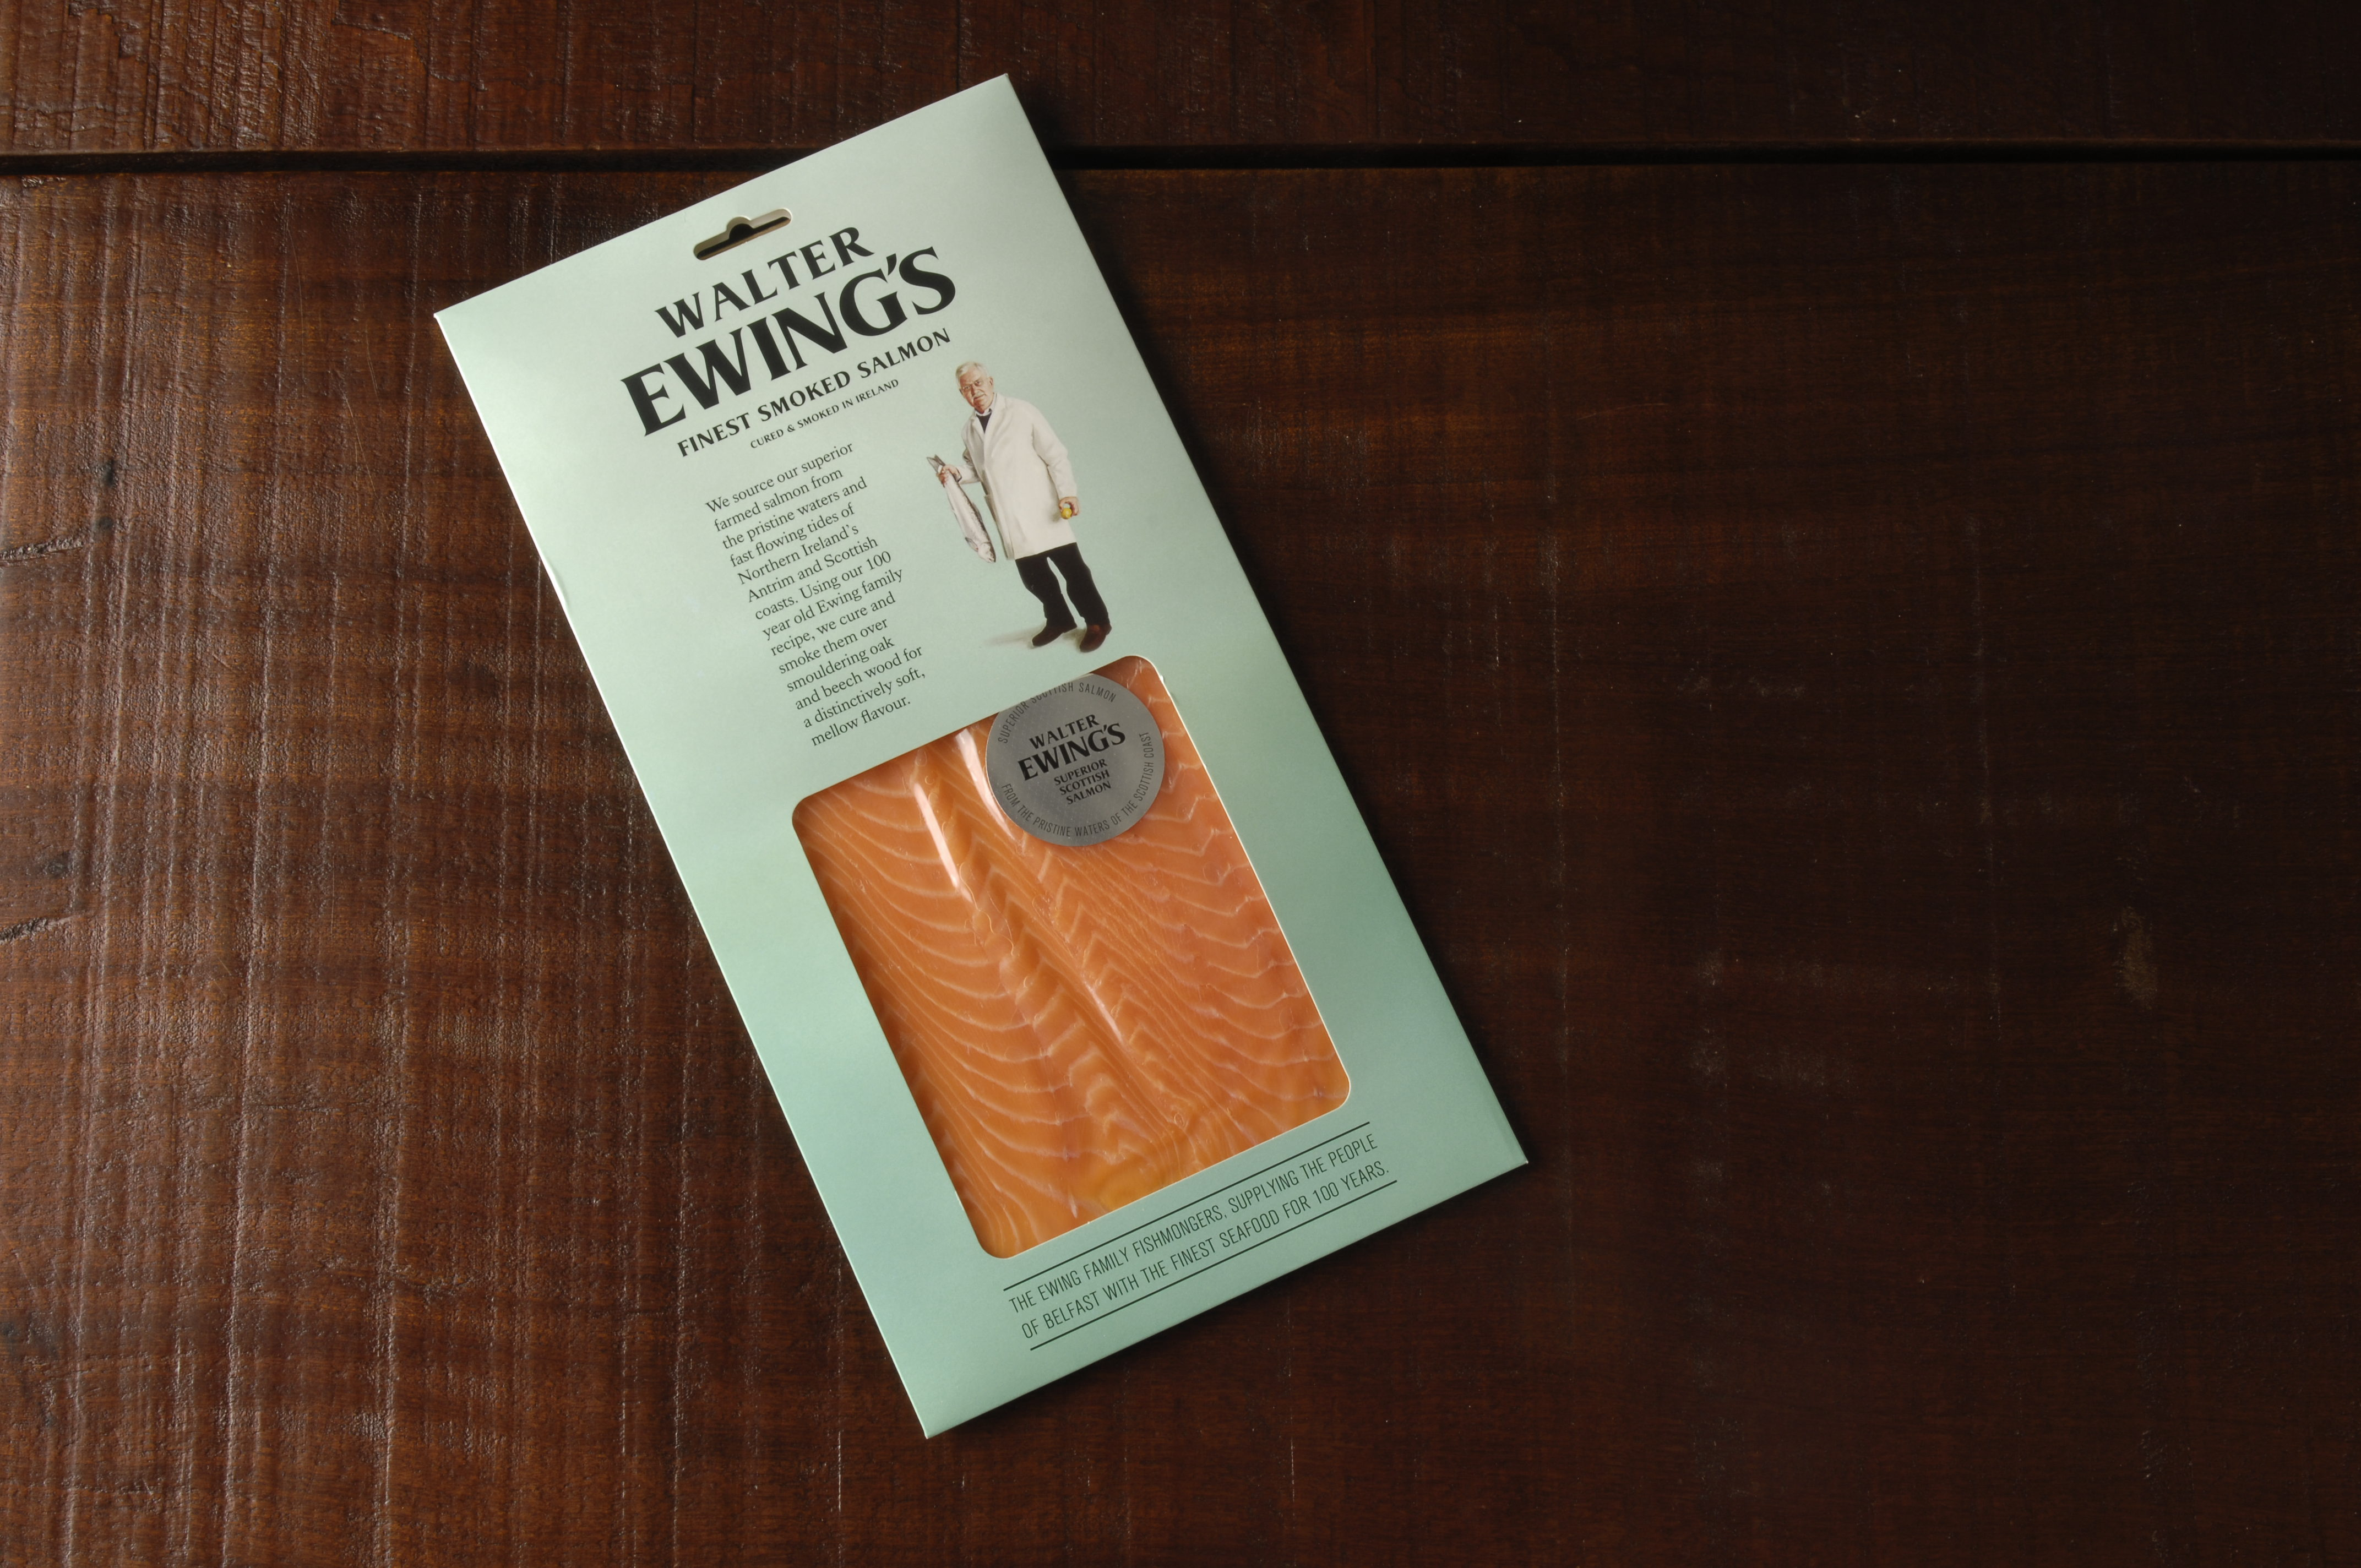 Ewing's Seafoods image 1